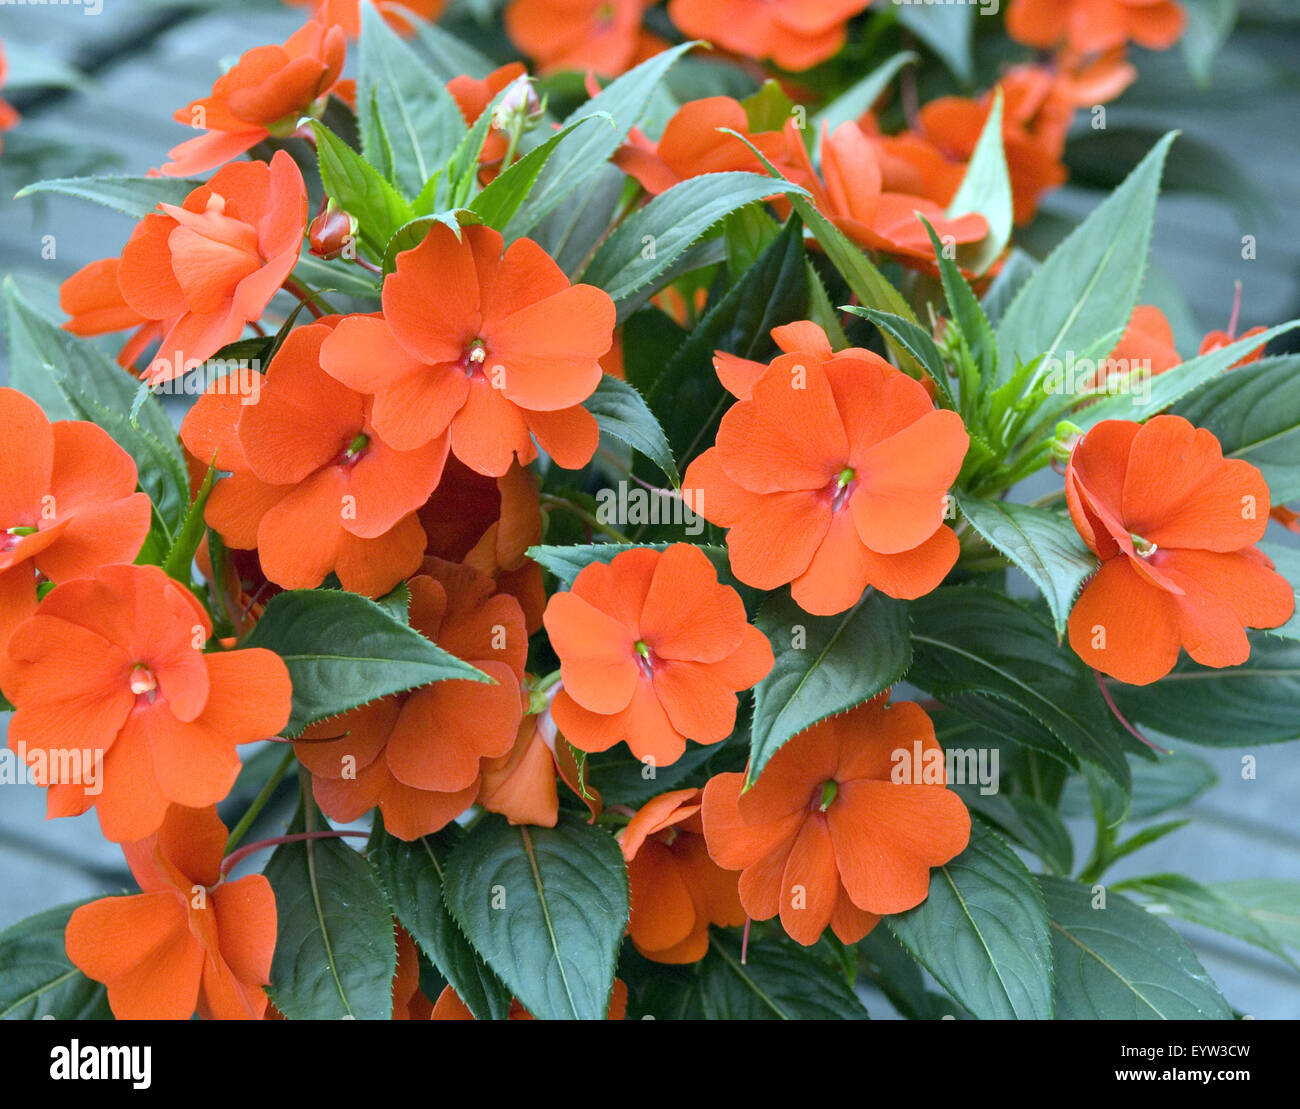 Zierpflanze Fleißiges Impatiens Neu Guinea Hybriden Stock Photo 85988697 Alamy